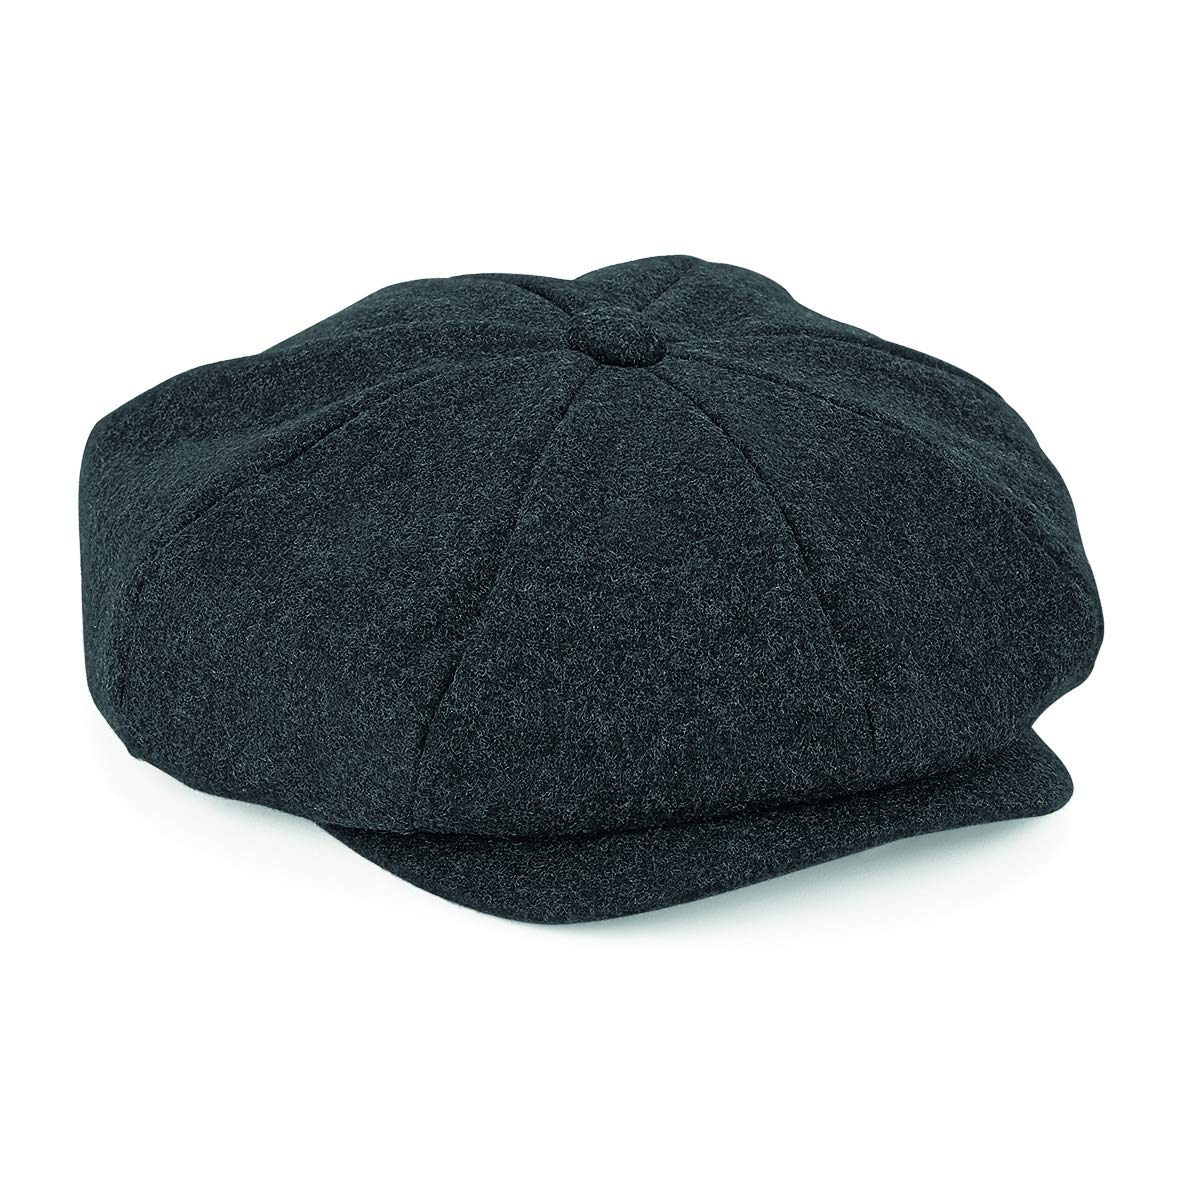 c11ff1acd33 Flat Cap with Peak  Shelby  Baker Boy Newsboy Herringbone Cloth Cap Hat  product image